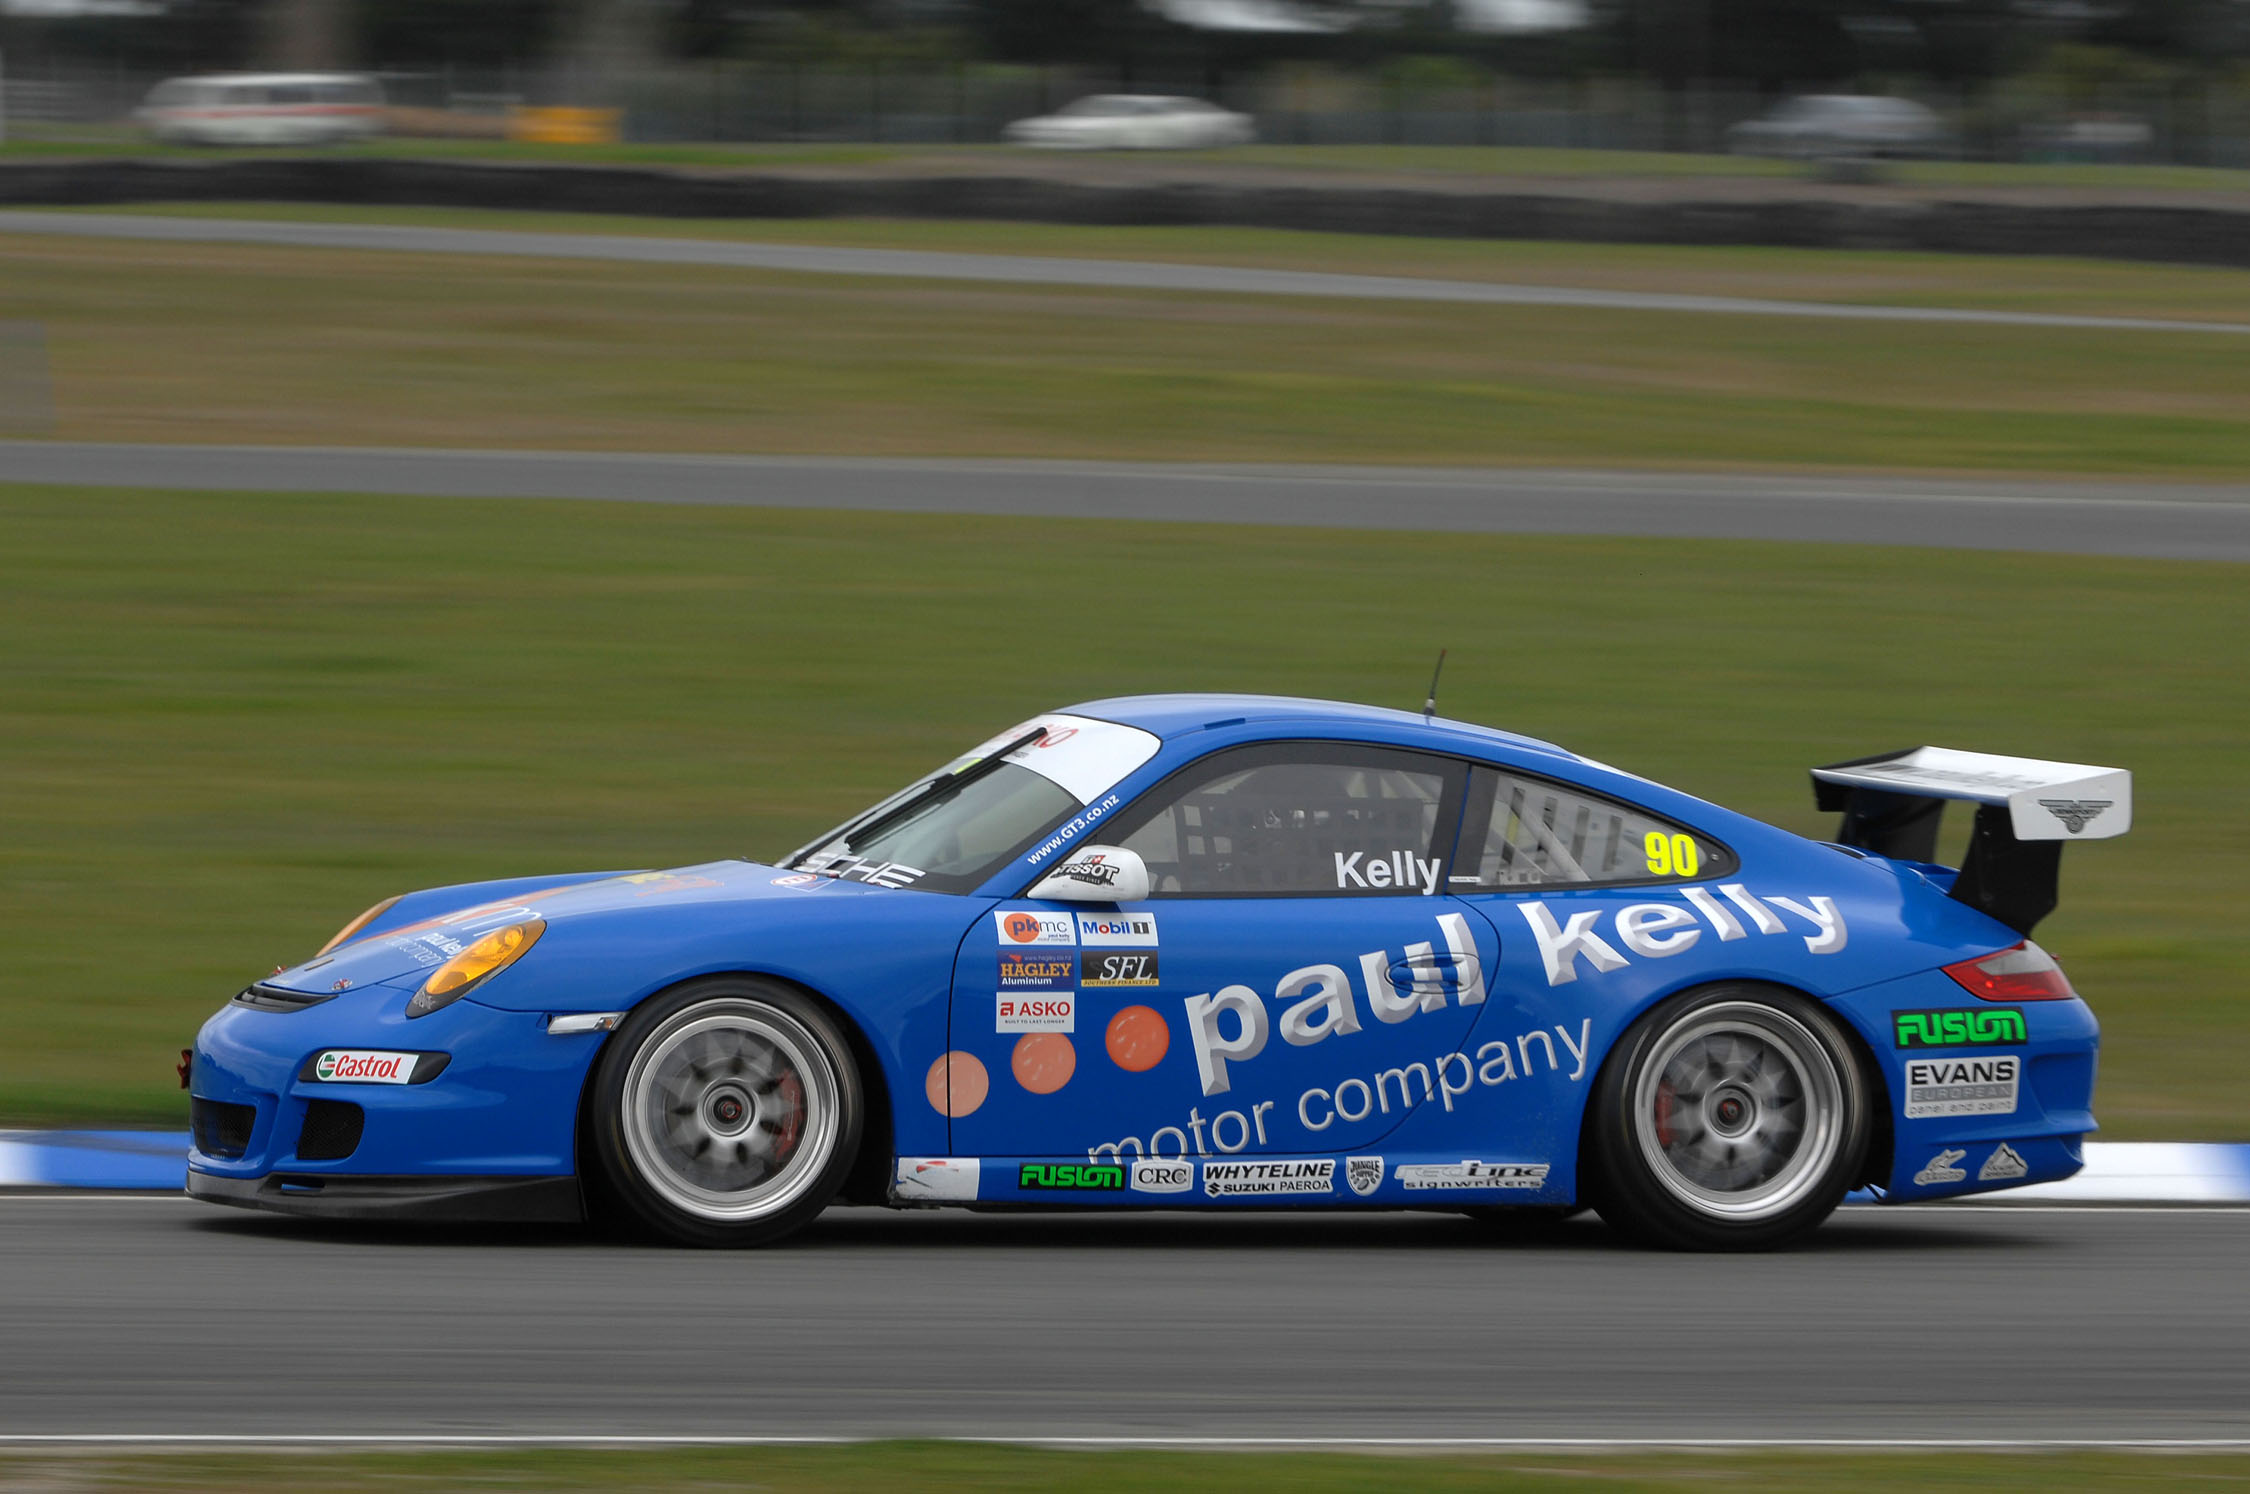 Exciting Cars And Top Drivers Open New Season At Teretonga   Scoop News